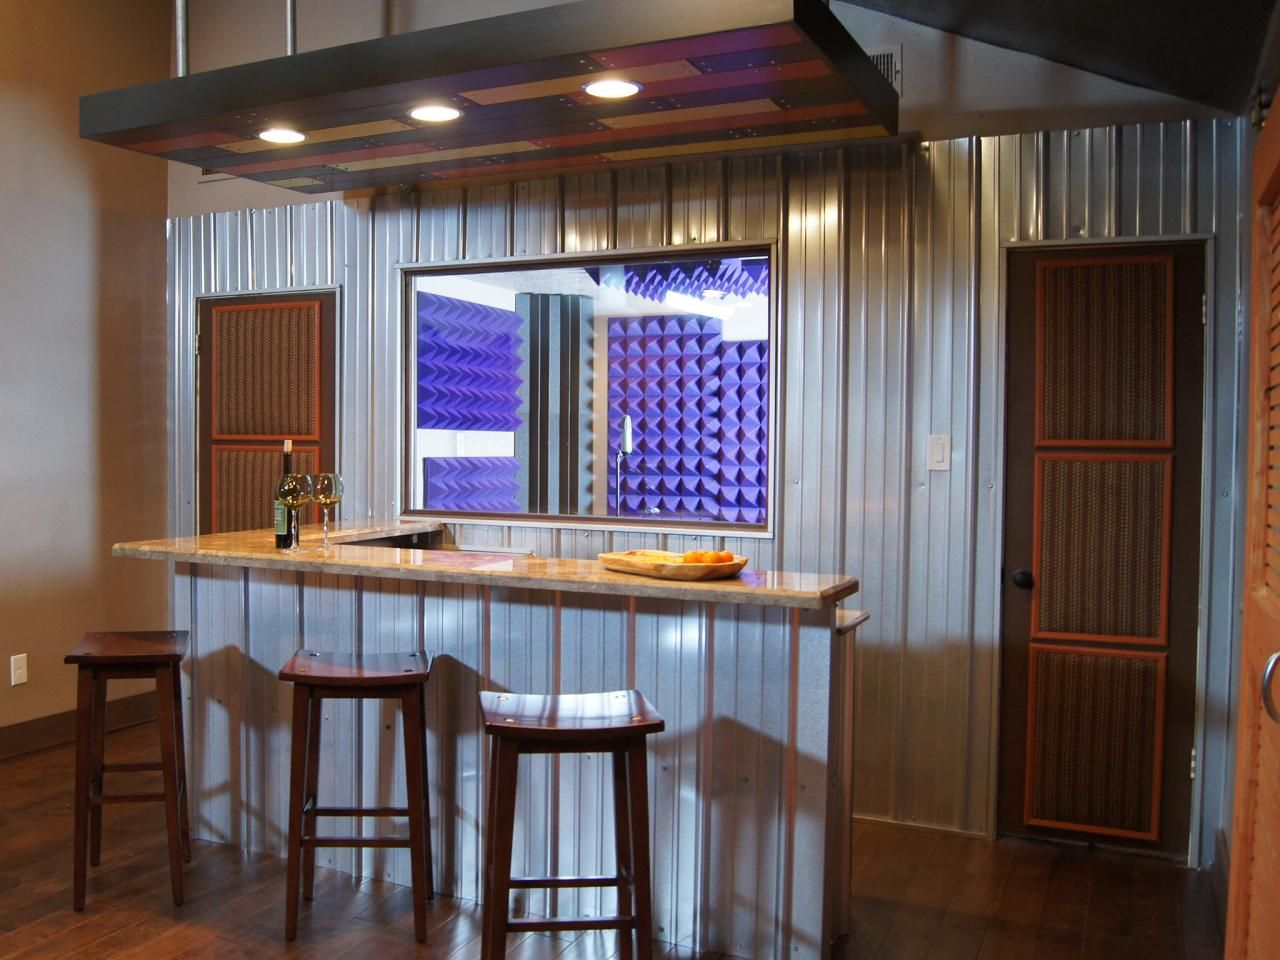 Etonnant Basement Bar Ideas. Basement Bar Ideas M